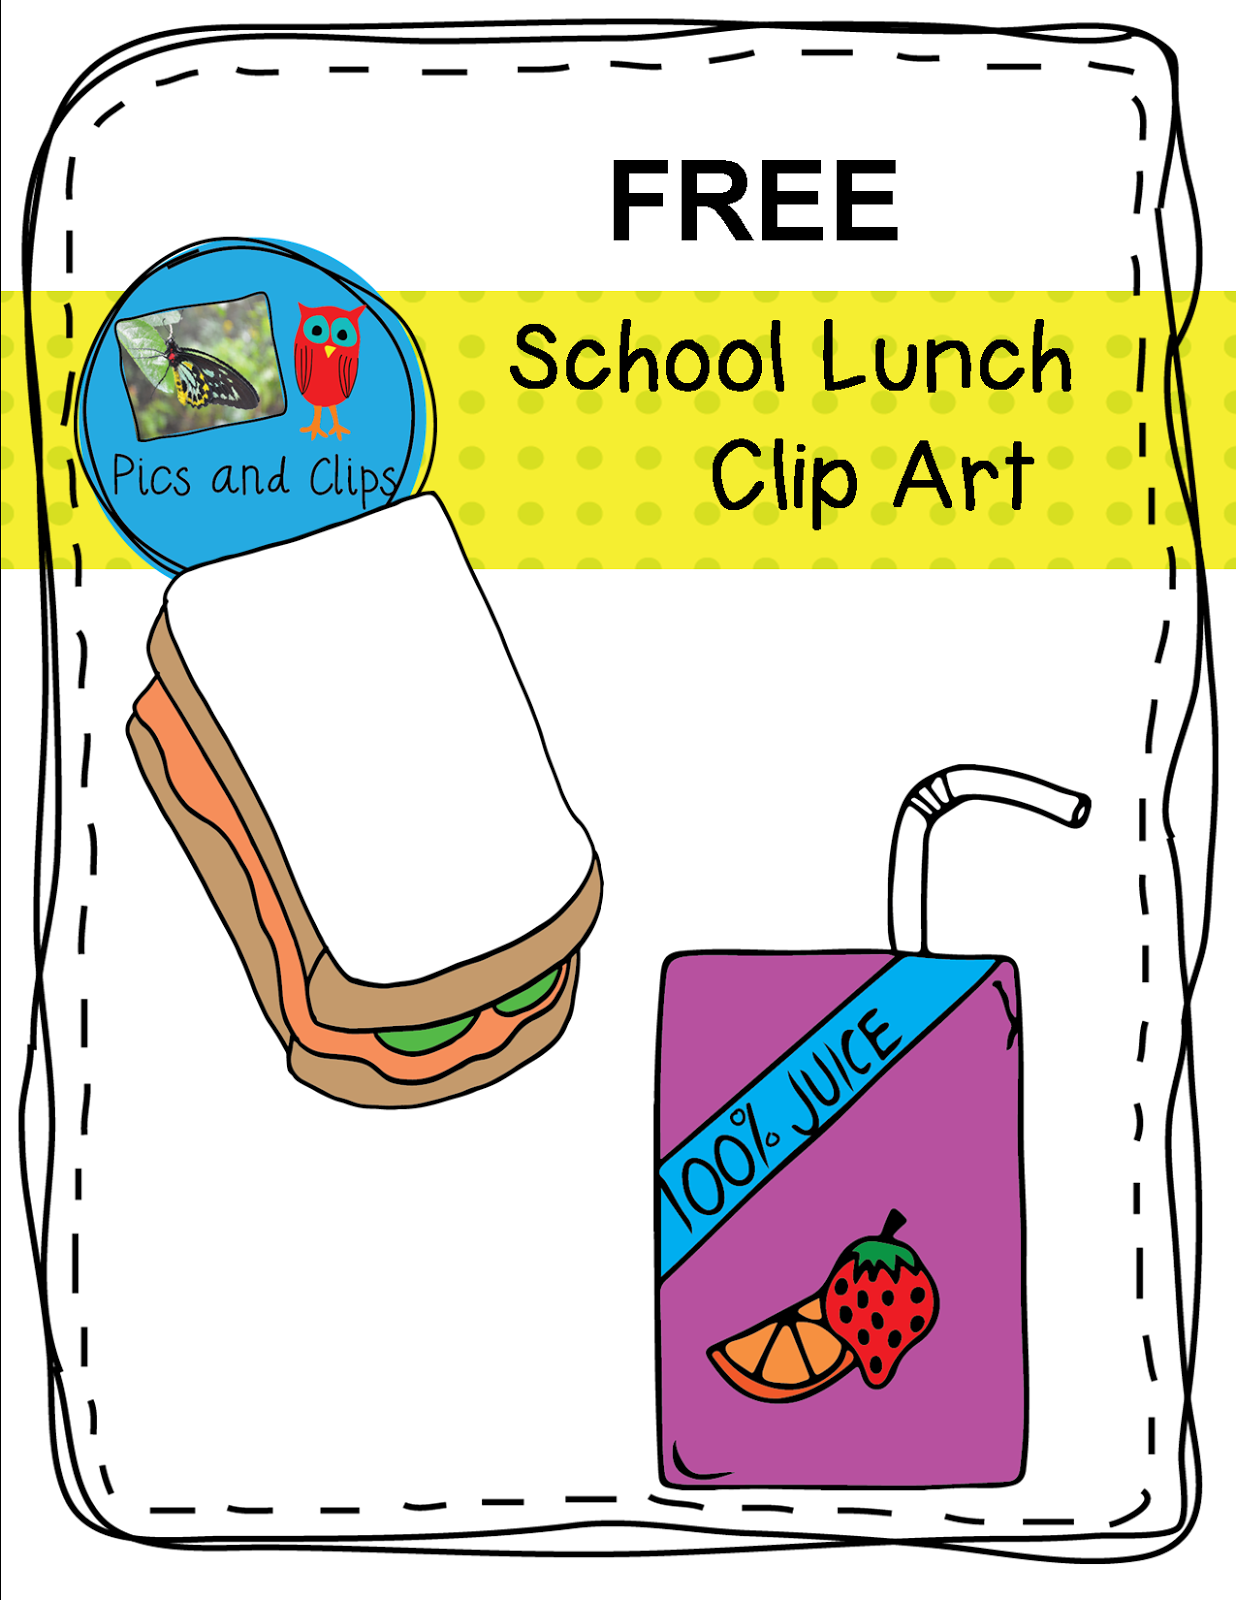 free school lunch clip art simply learning centers school lunch rh pinterest com cafeteria lunch clipart cafeteria images clipart